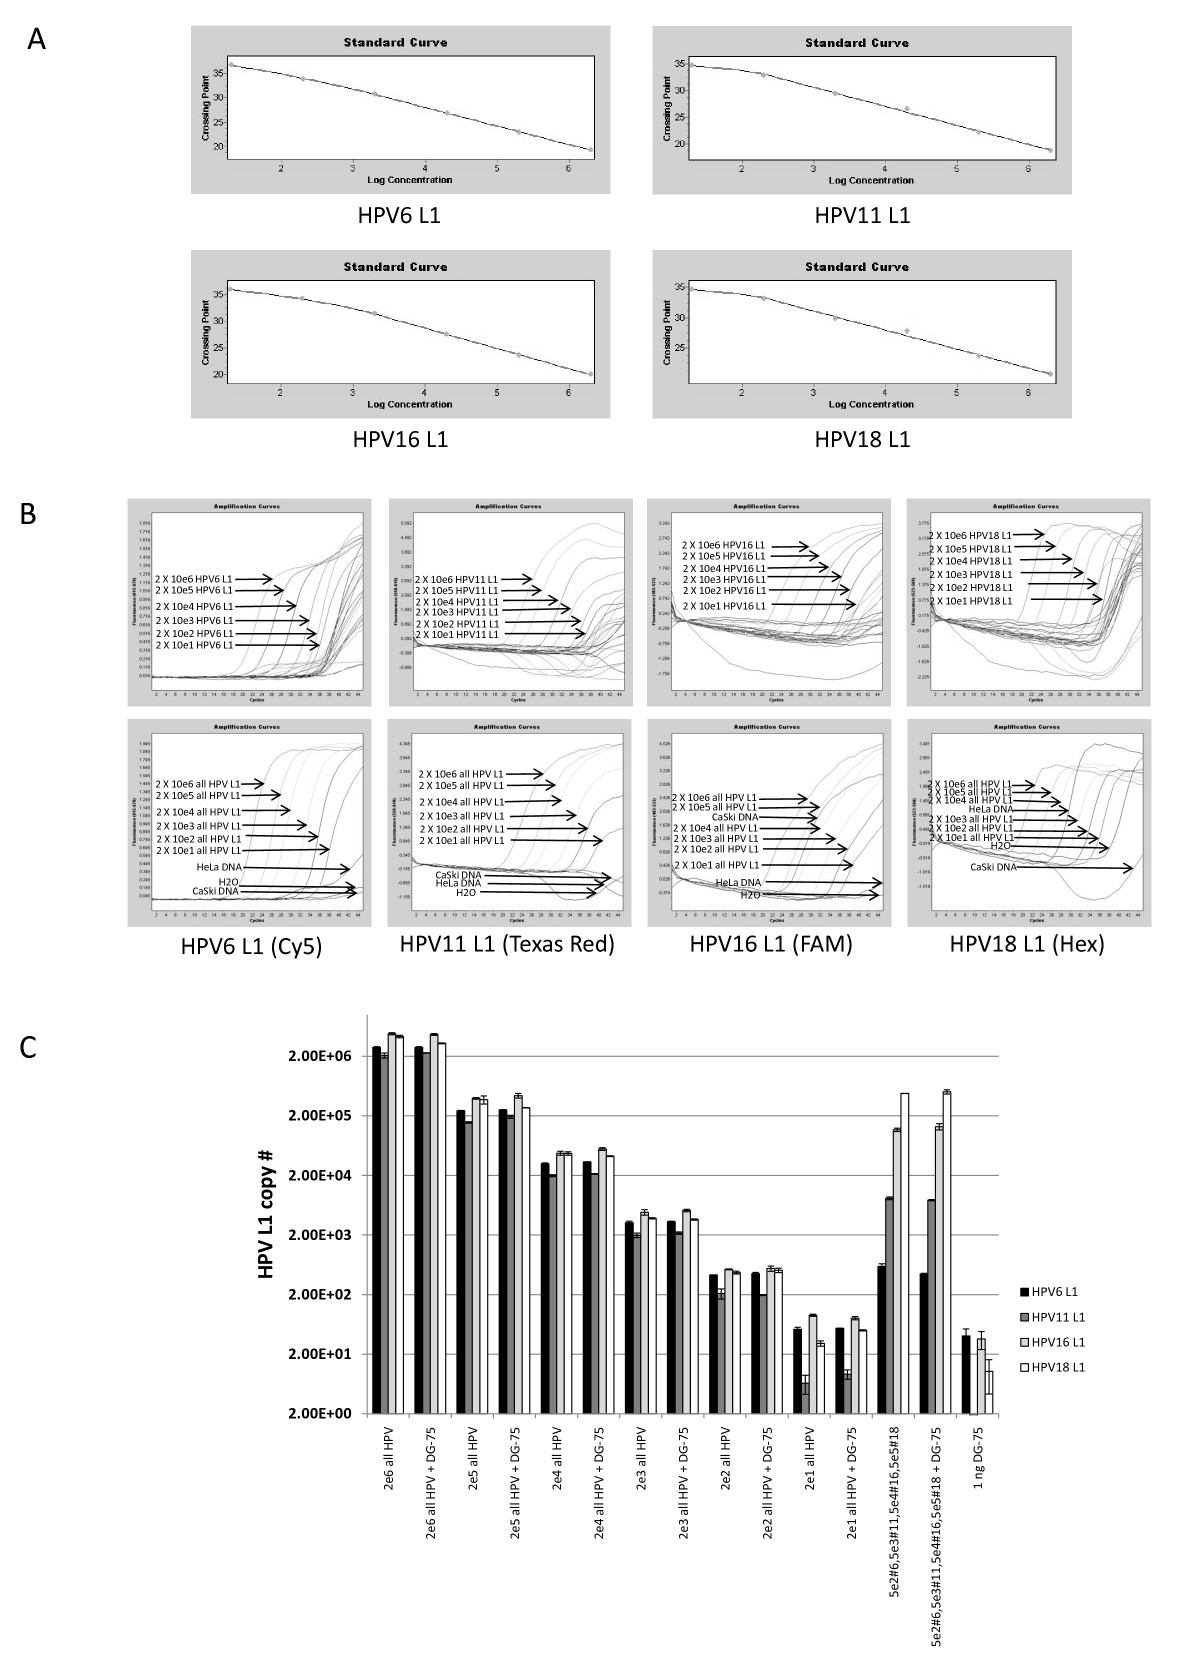 http://static-content.springer.com/image/art%3A10.1186%2F1743-422X-7-194/MediaObjects/12985_2010_Article_939_Fig4_HTML.jpg